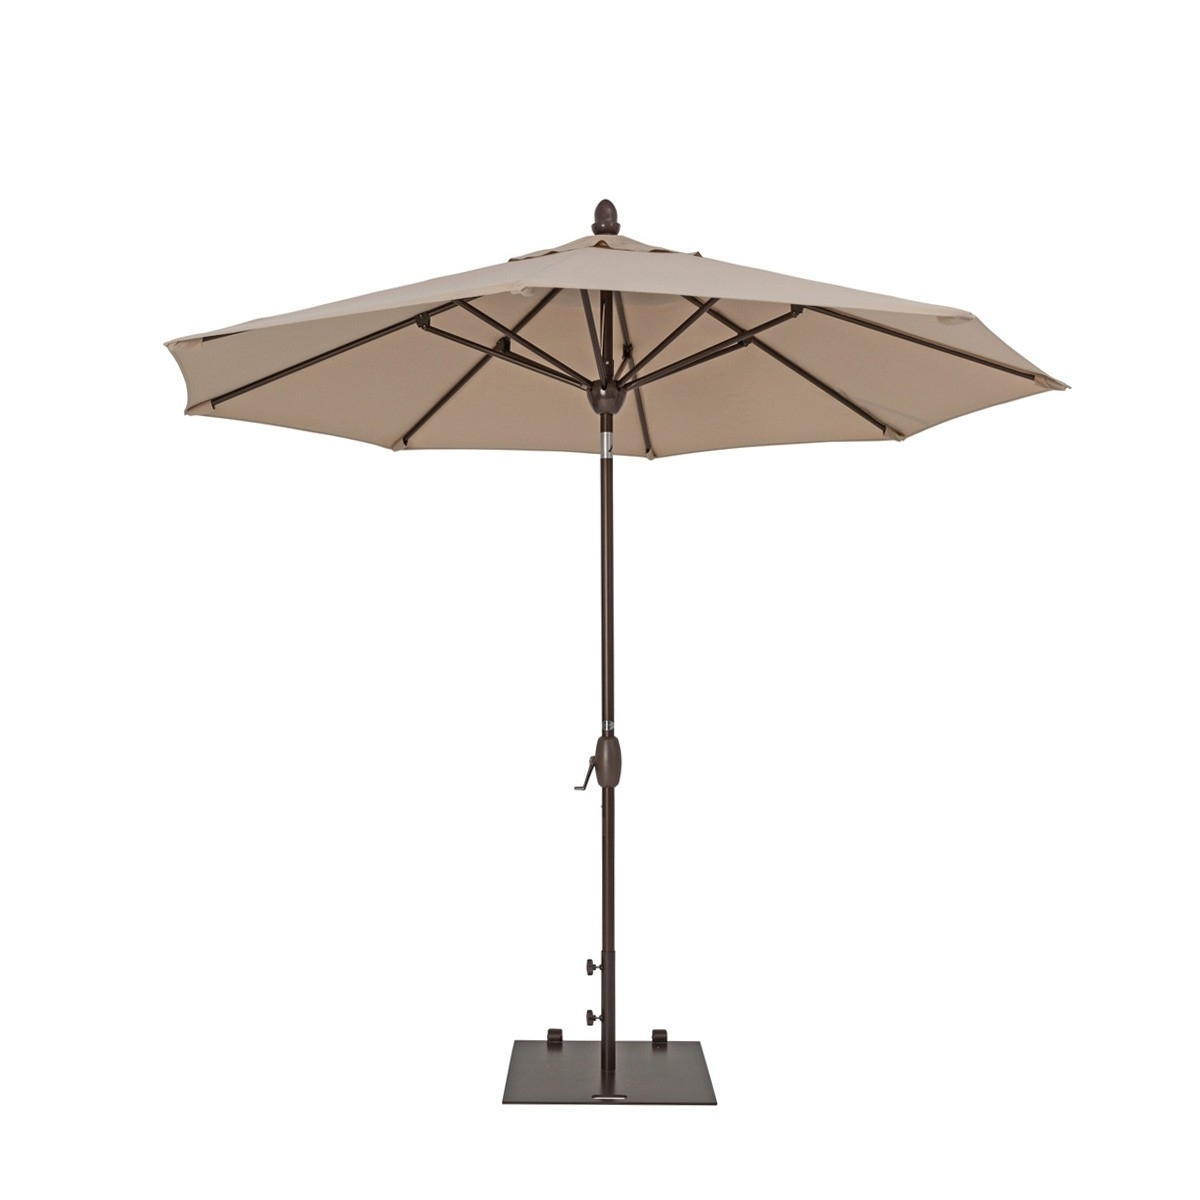 2018 Tilting Patio Umbrella (View 16 of 20)